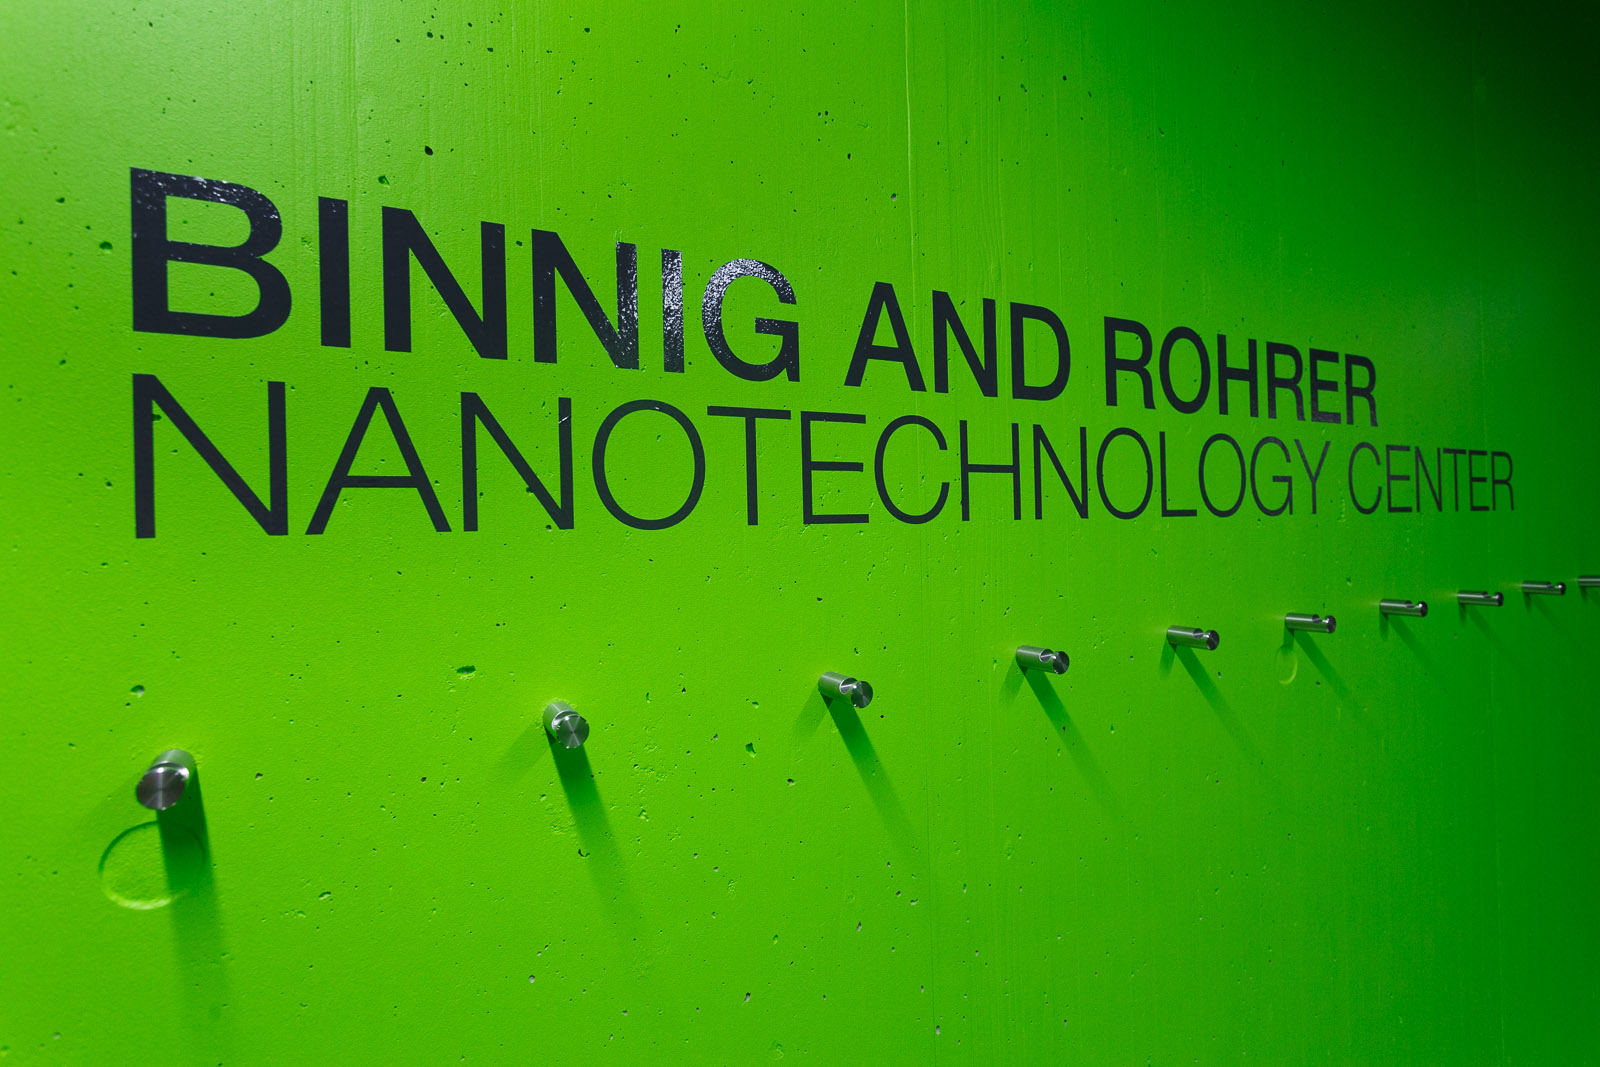 IBM built its new noise-free labs at its Binnig and Rohrer Nanotechnology Center at IBM Research's Zurich lab. The center is named after Gerd Binnig and Heinrich Rohrer, IBM researchers awarded the Nobel Prize for their invention of the scanning tunneling